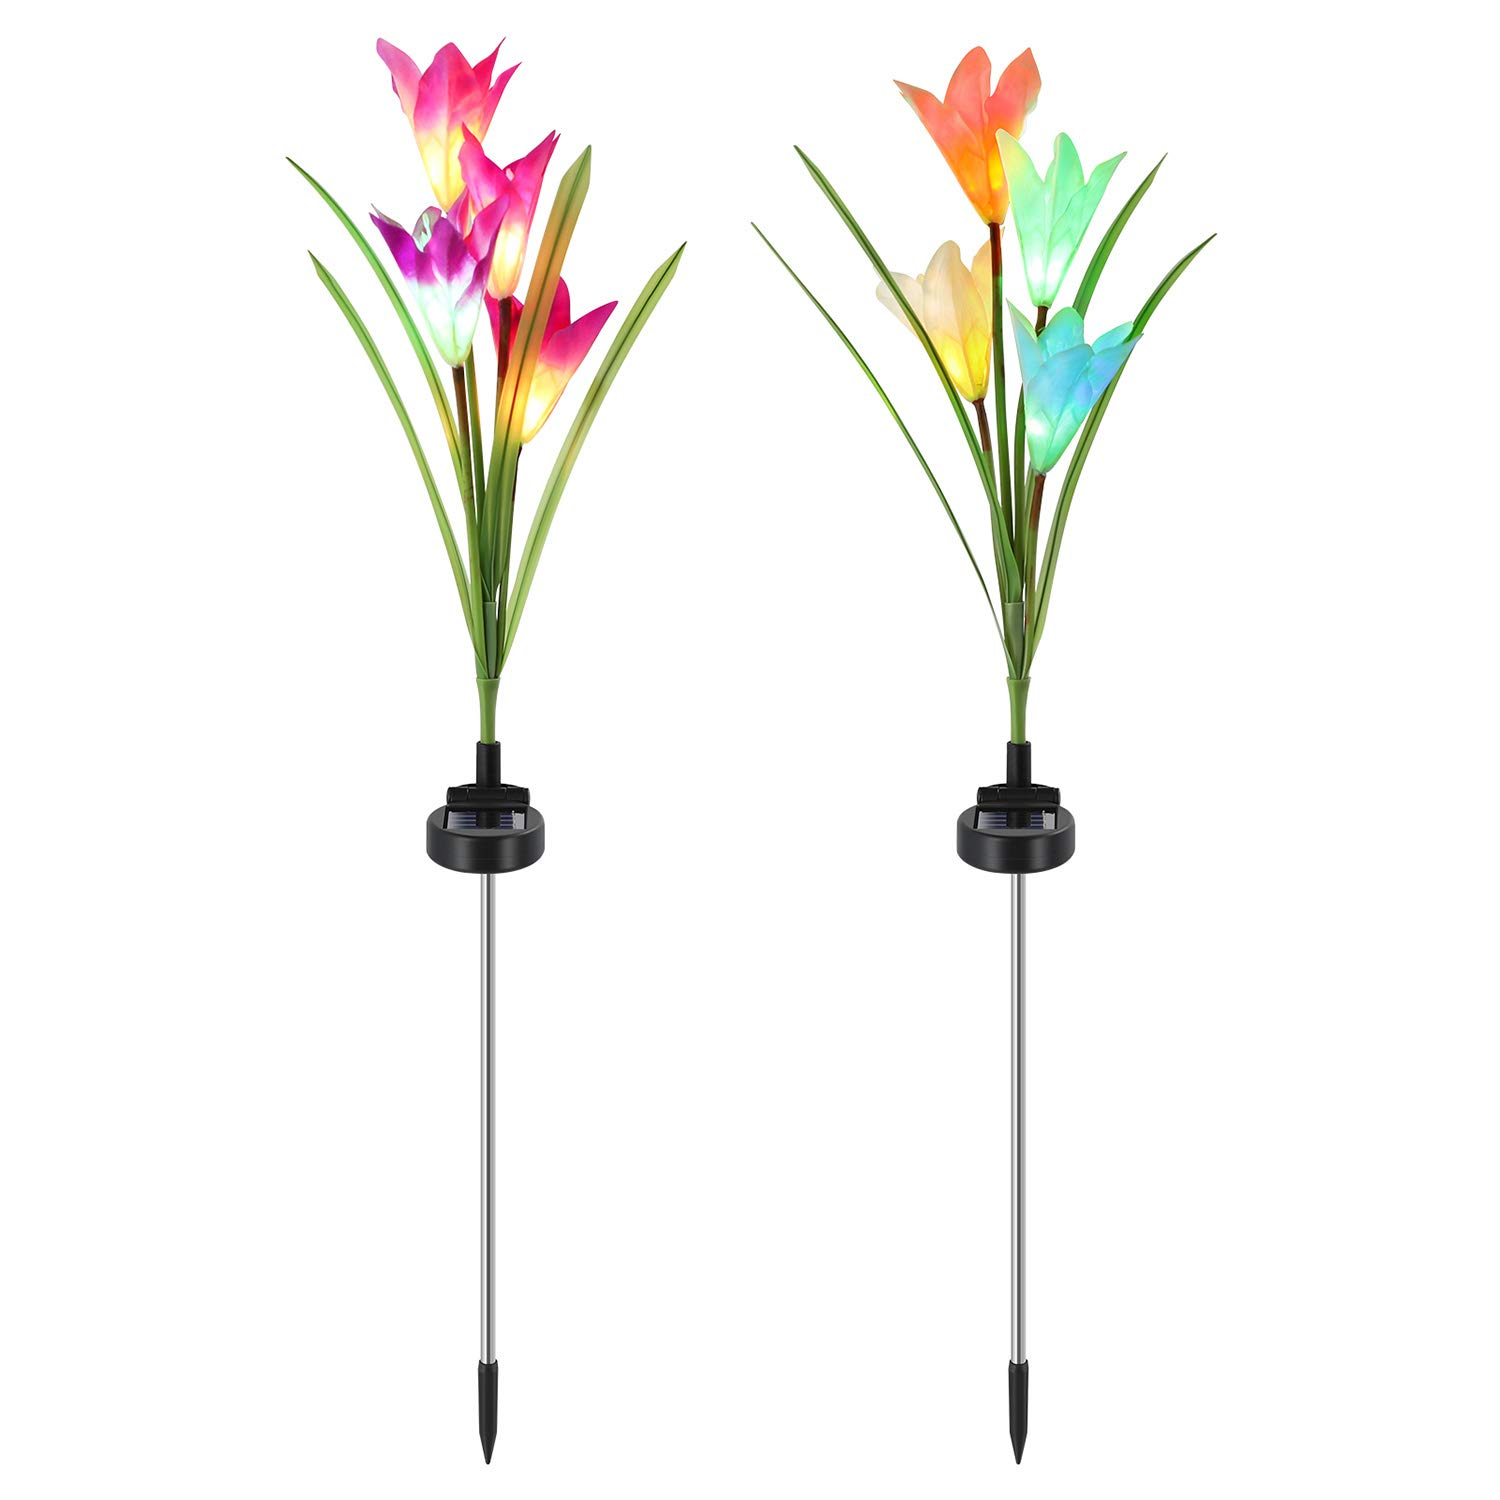 Benuo Solar Garden Lily Stake Light Outdoor Solar Powered Lily Light Multi-Color Changing Auto ON/Off 7 Color Auto Changing Decorative Flower Garden Light Elegant Lily for Garden Lawn Patio Backyard